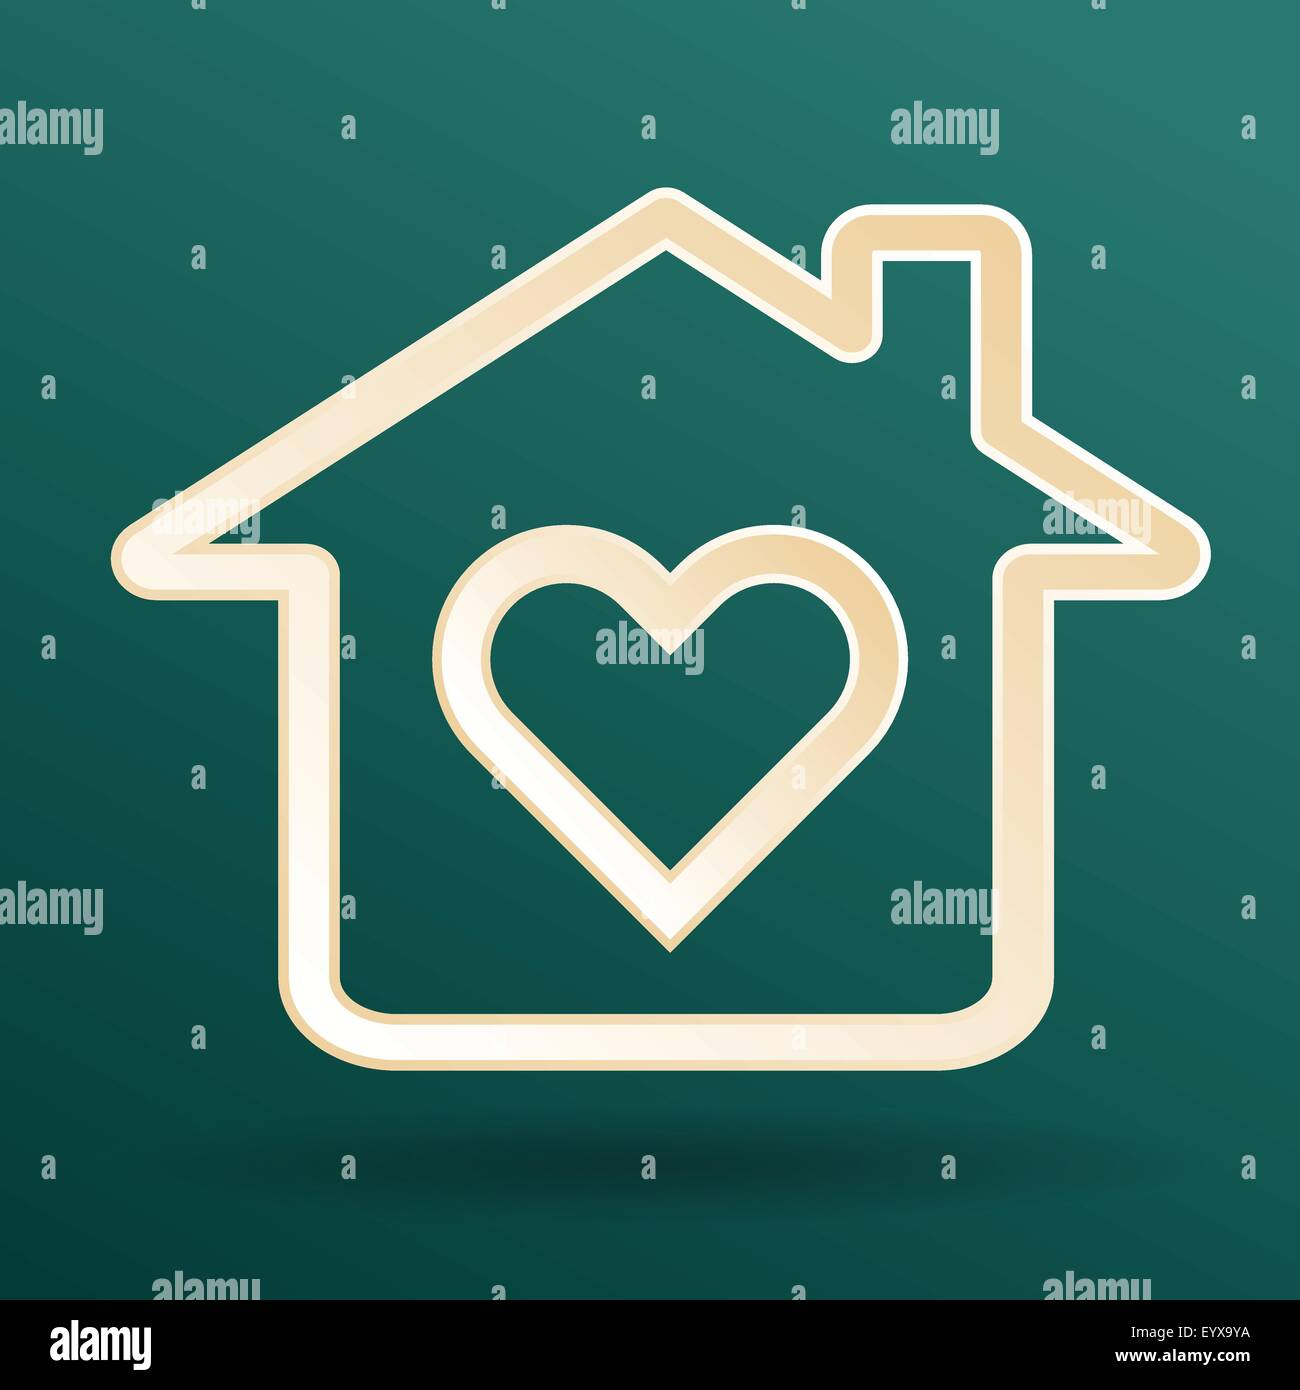 Abstract heart and home symbols on dark background as happy family love concept vector illustration. - Stock Vector